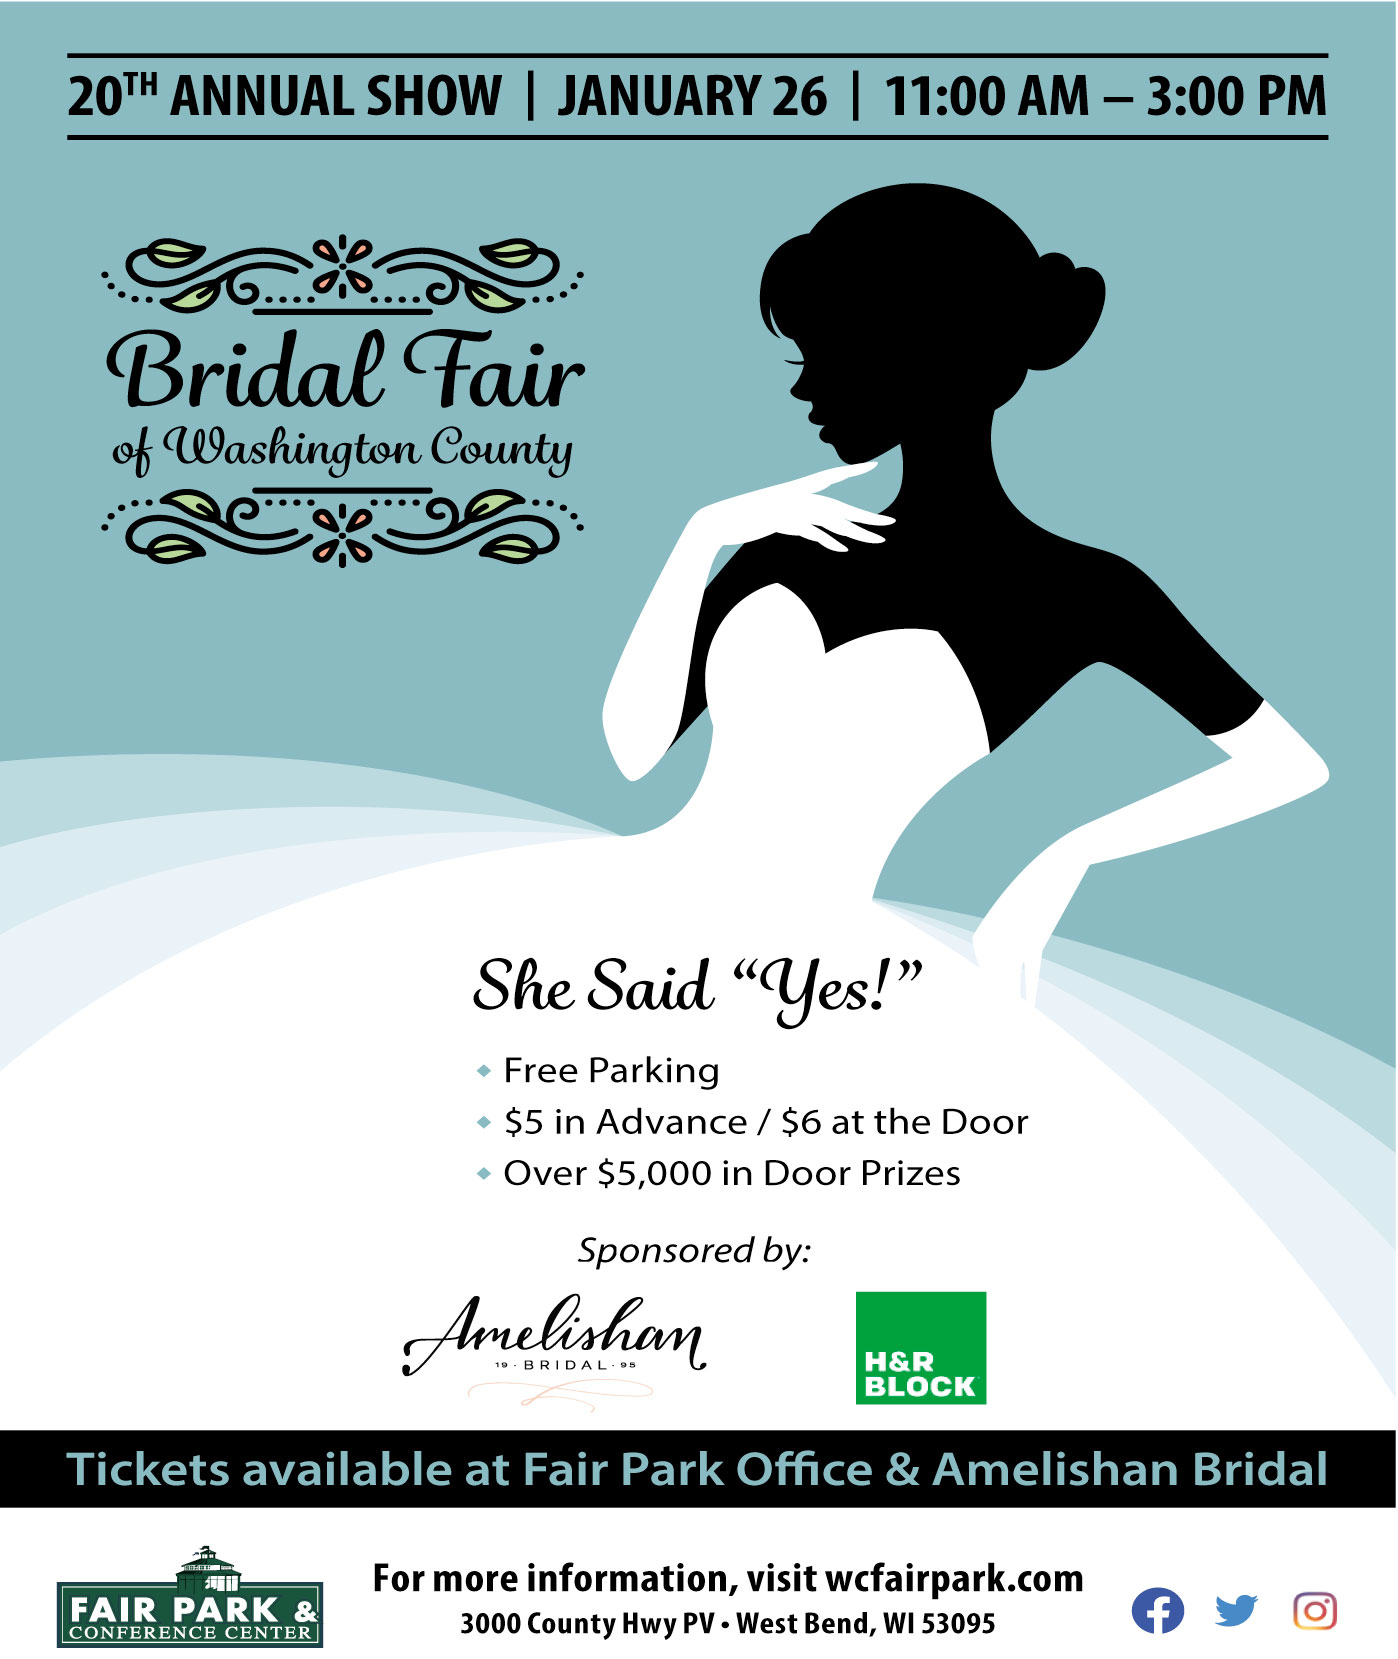 Washington County Bridal Fair